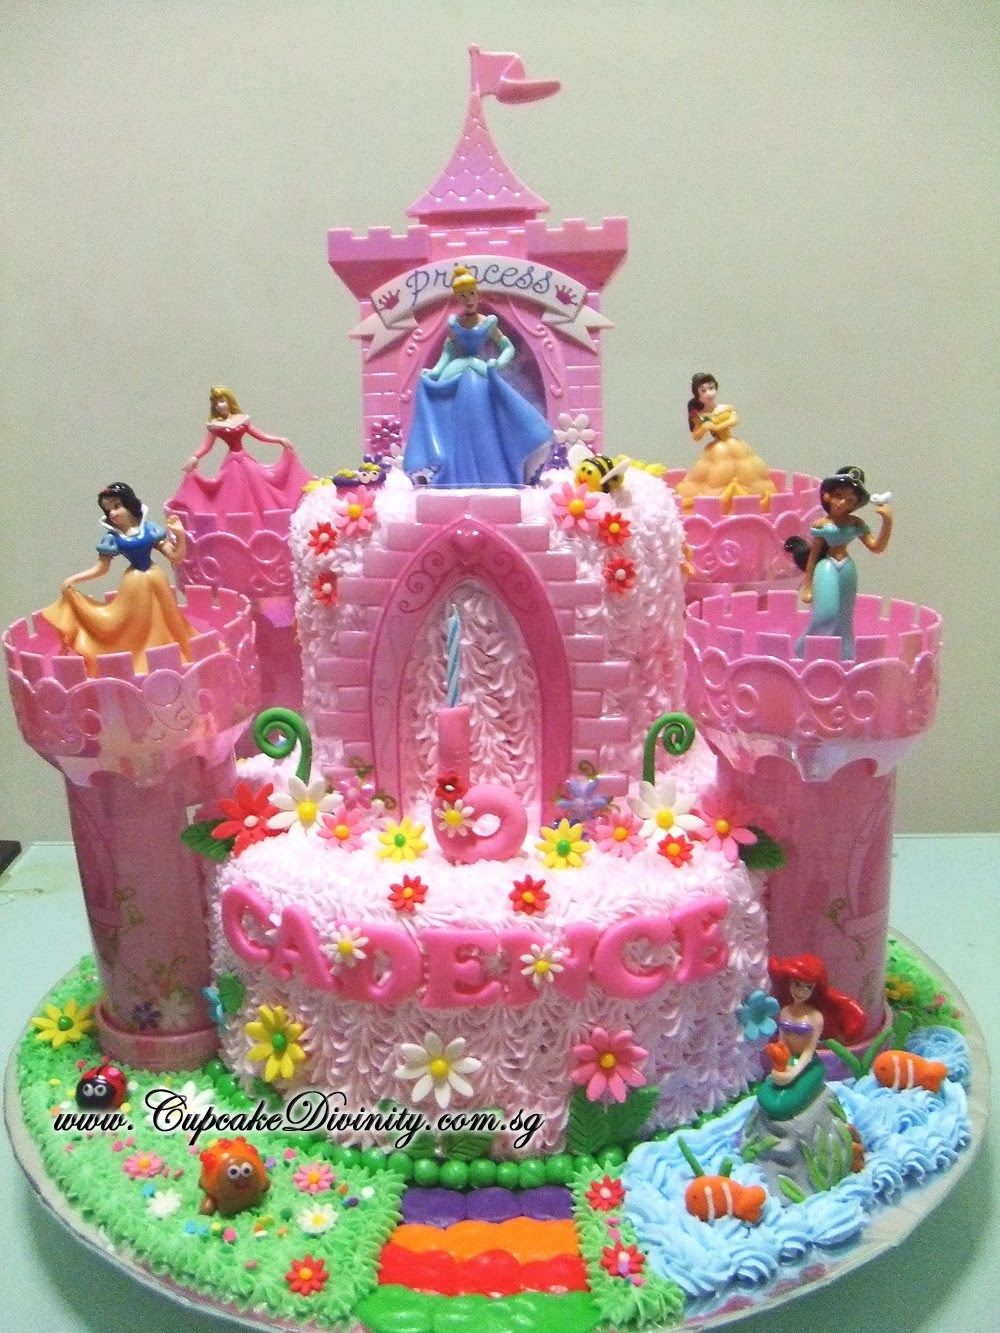 Admirable 25 Inspiration Picture Of Disney Princess Birthday Cake With Funny Birthday Cards Online Fluifree Goldxyz